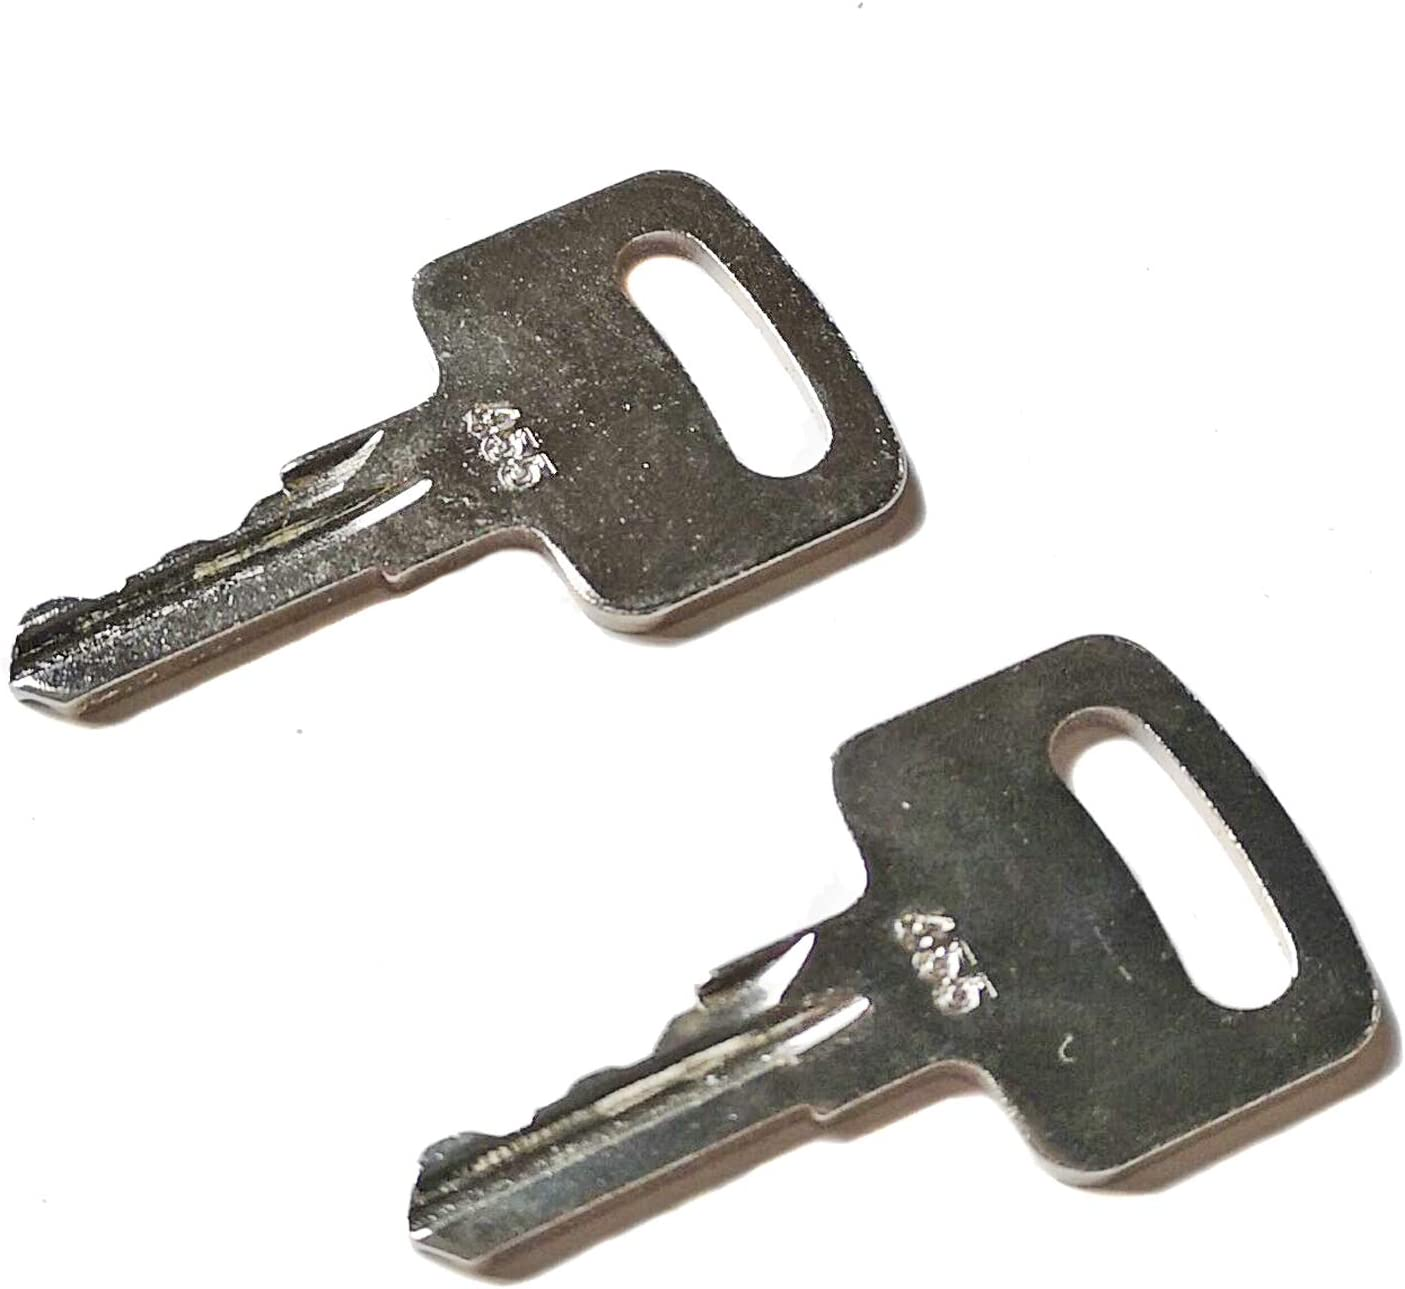 10 Ignition Keys 455 for Scissor Lift Boom Lifts Genie Skyjack Terex Snorkel Manlift Upright Mover Parts